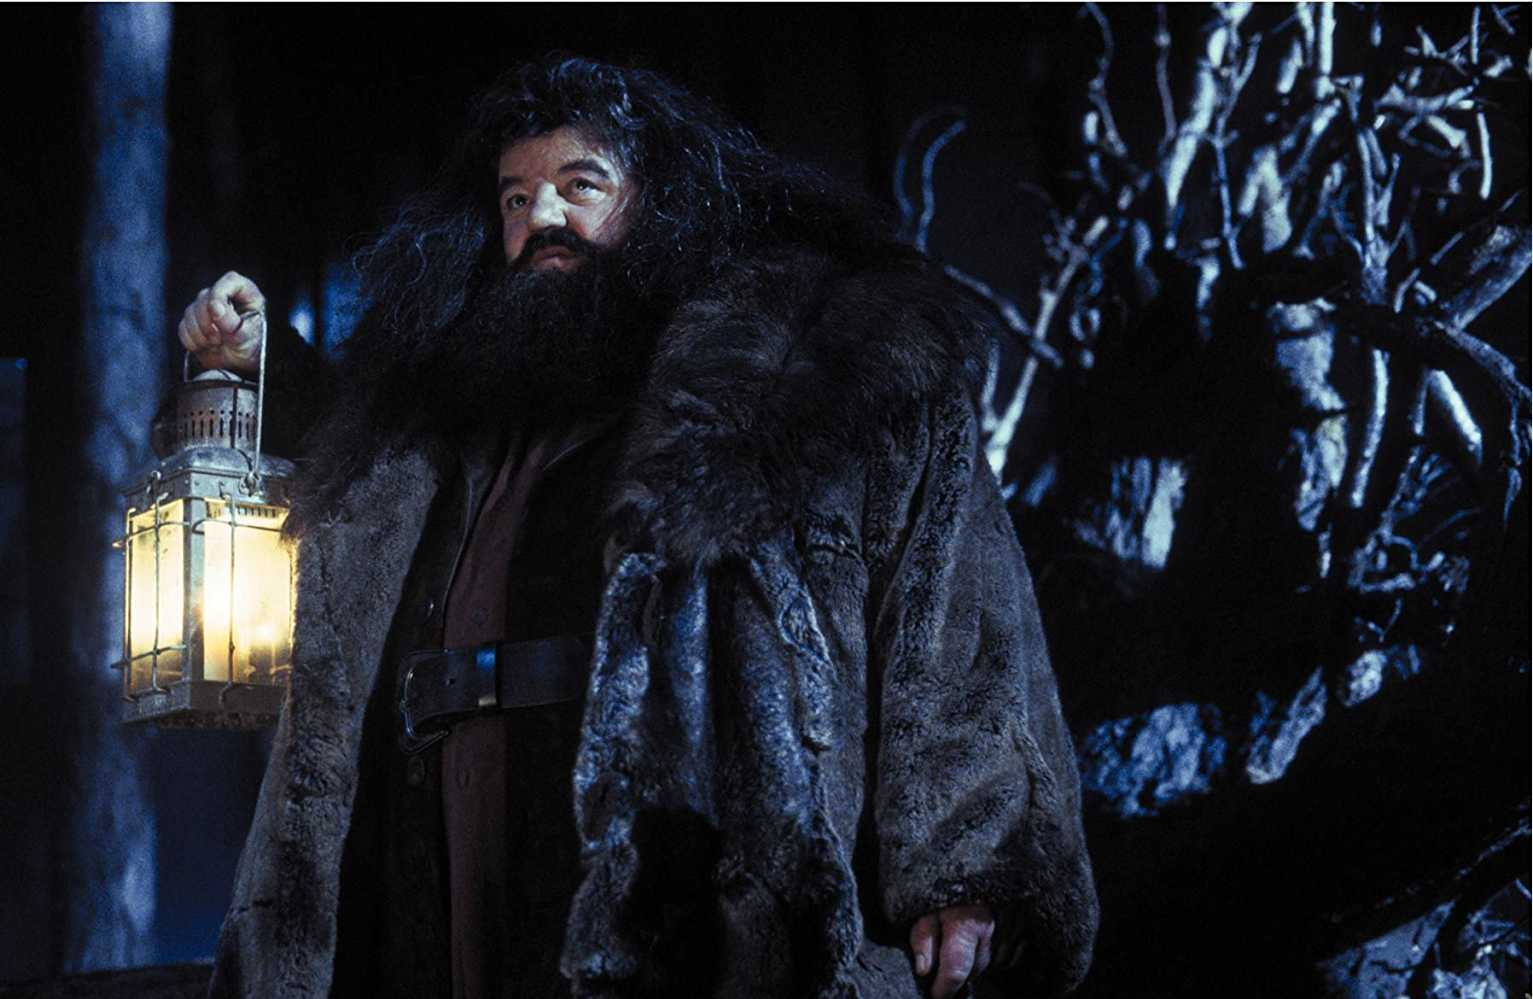 Robbie Coltrane as Rubeus Hagrid in Harry Potter and the Philosopher's Stone (Source: IMDb)